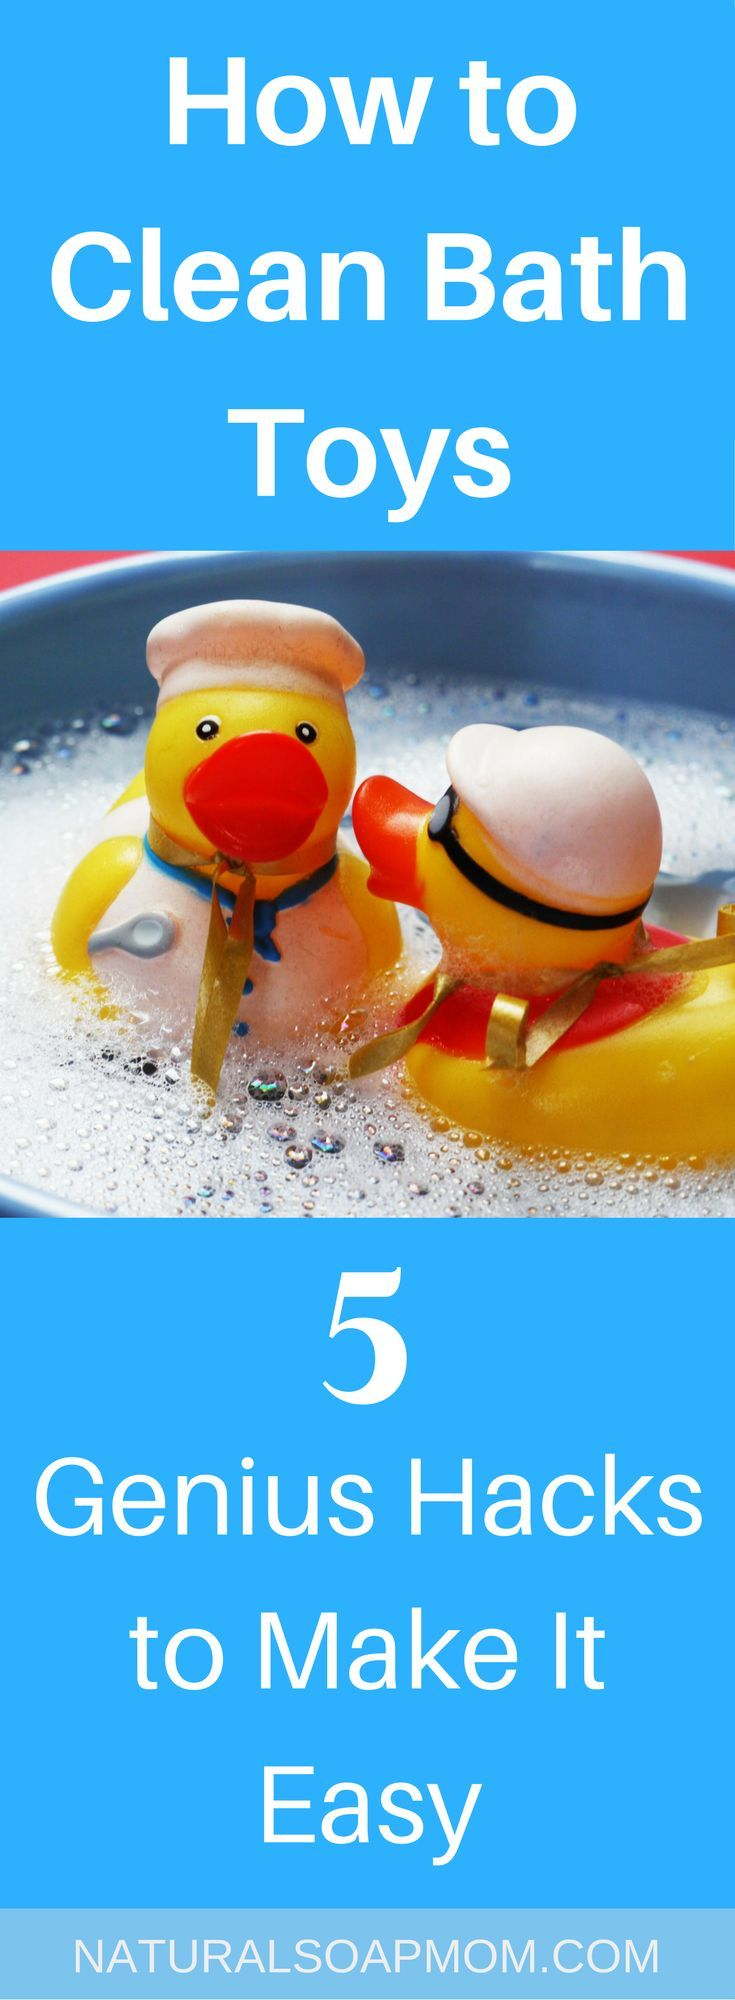 How To Clean Bath Toys   5 Genius Hacks To Make It Easy